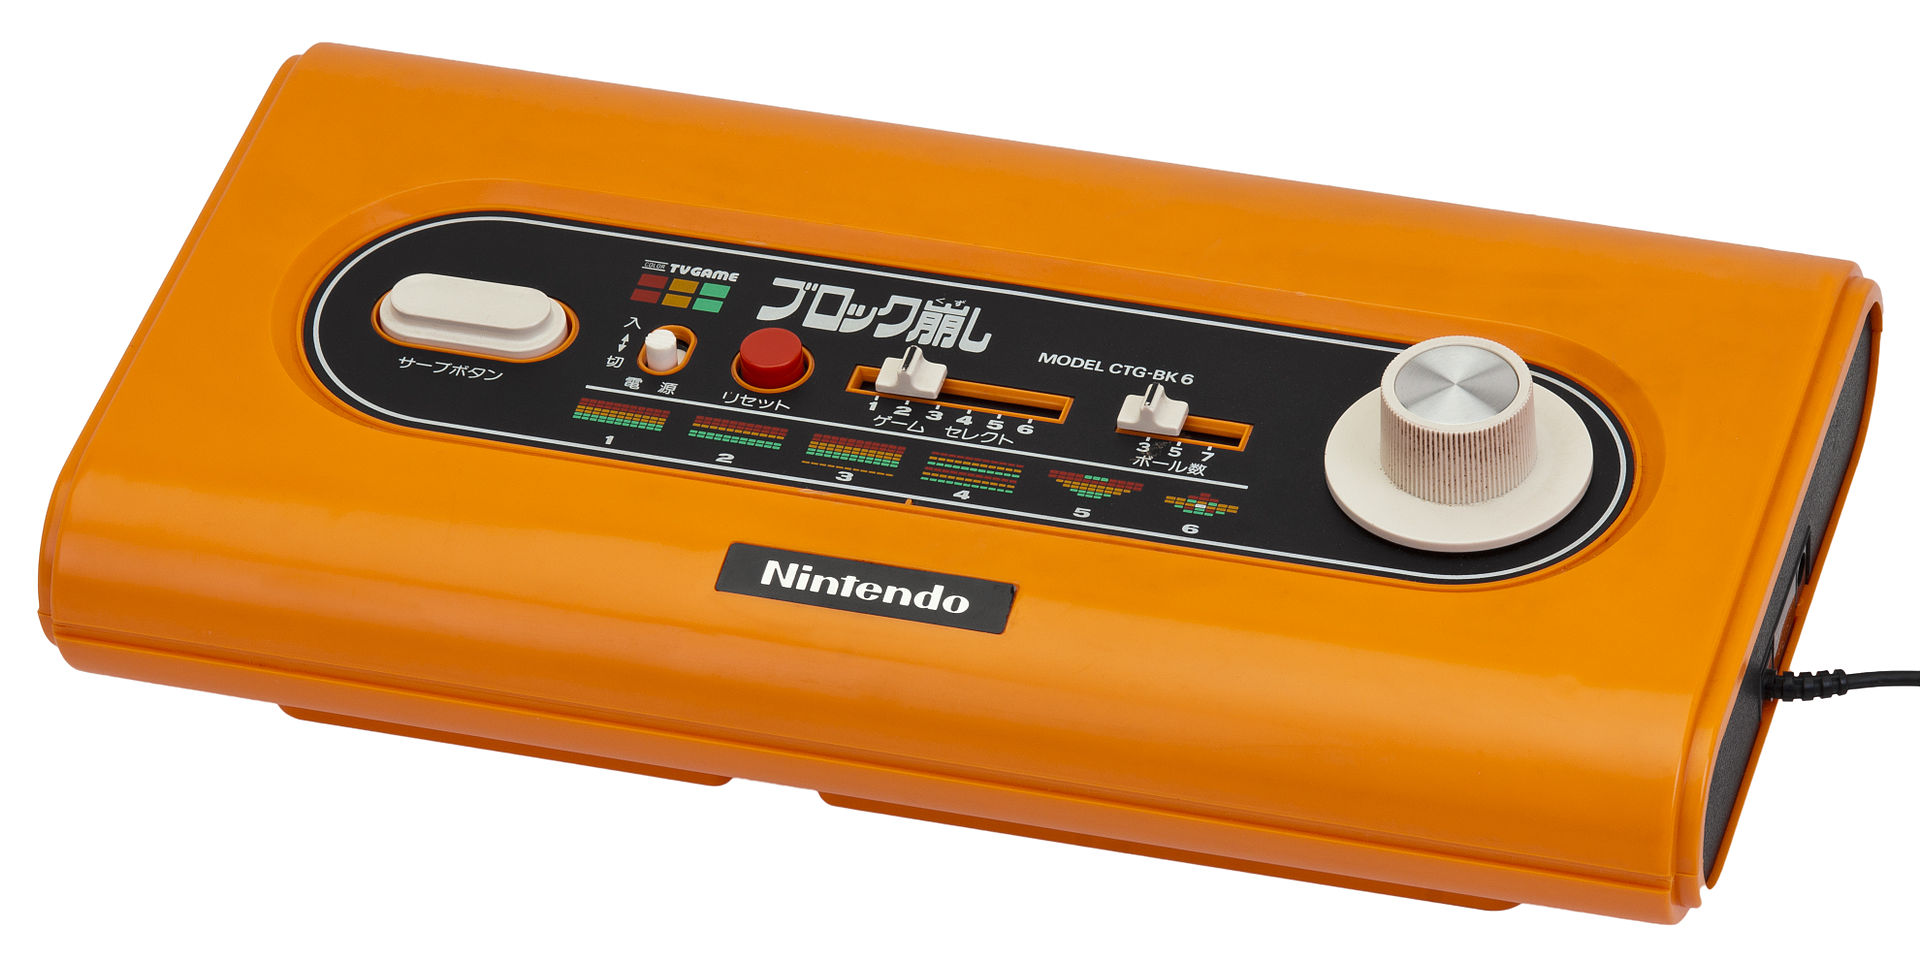 Nintendo Color Tv Game : Nintendo color tv game th anniversary